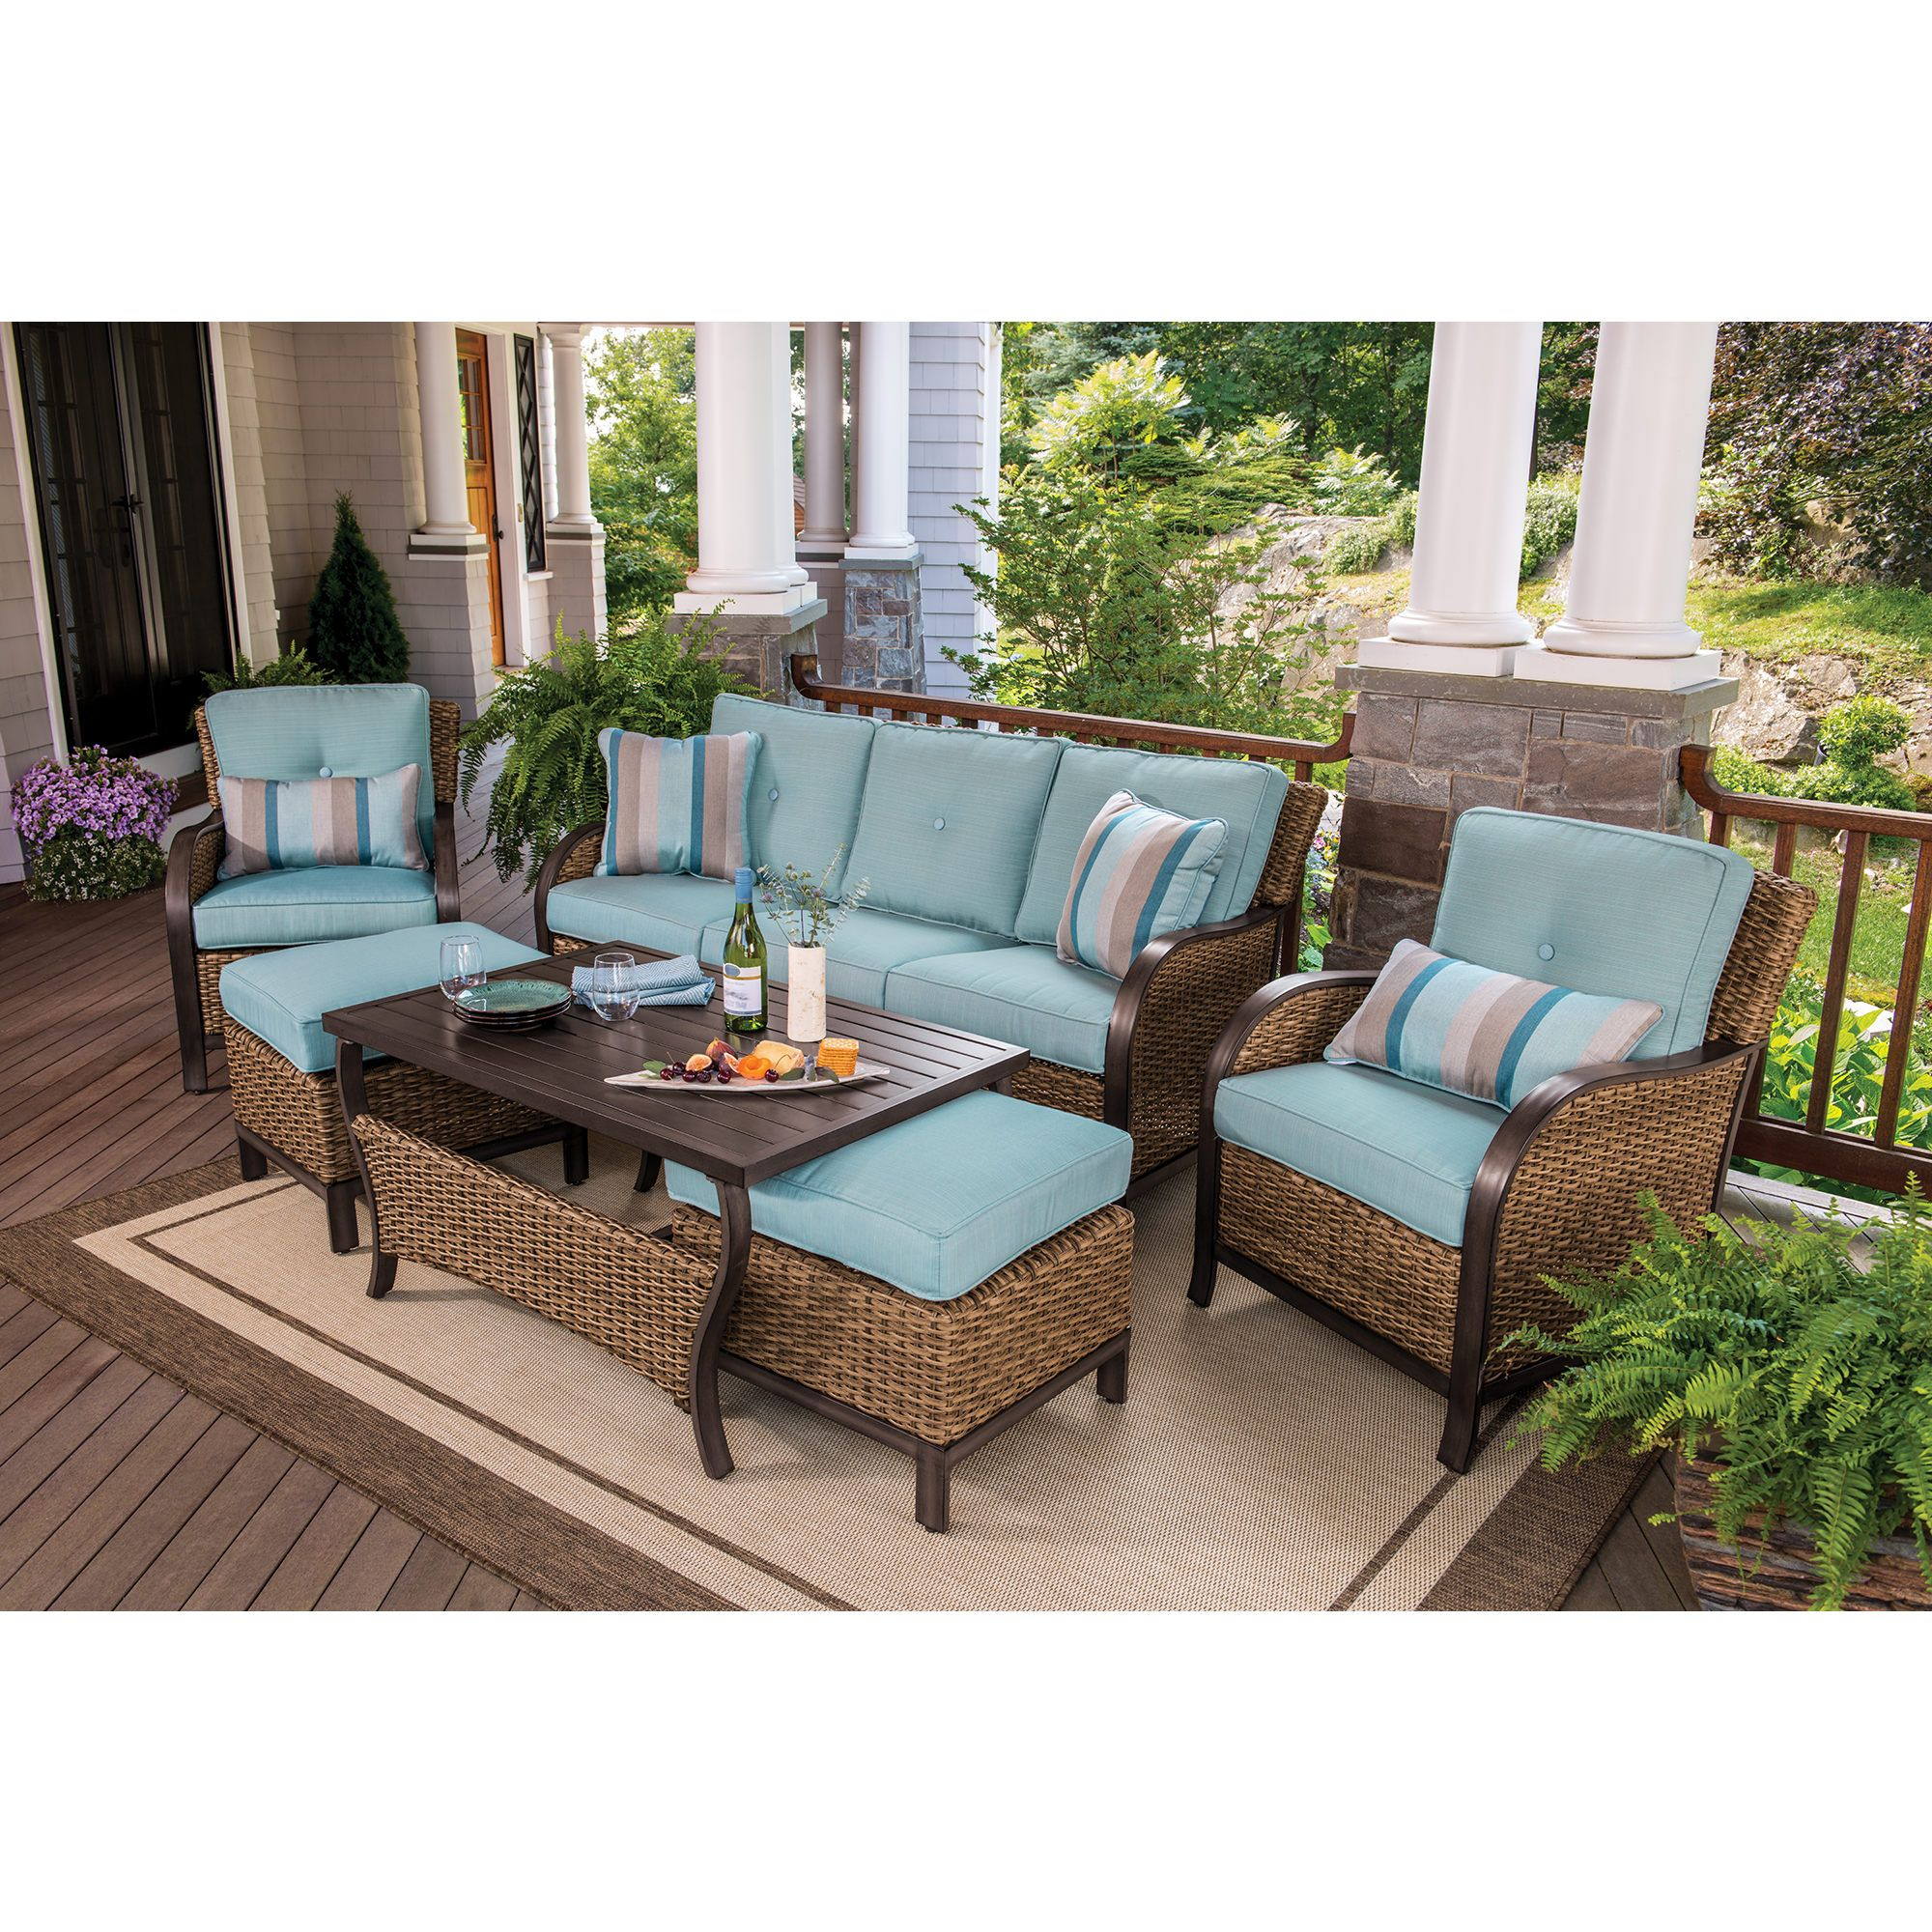 Berkley jensen nantucket 6 piece wicker patio set bjs for Wholesale patio furniture